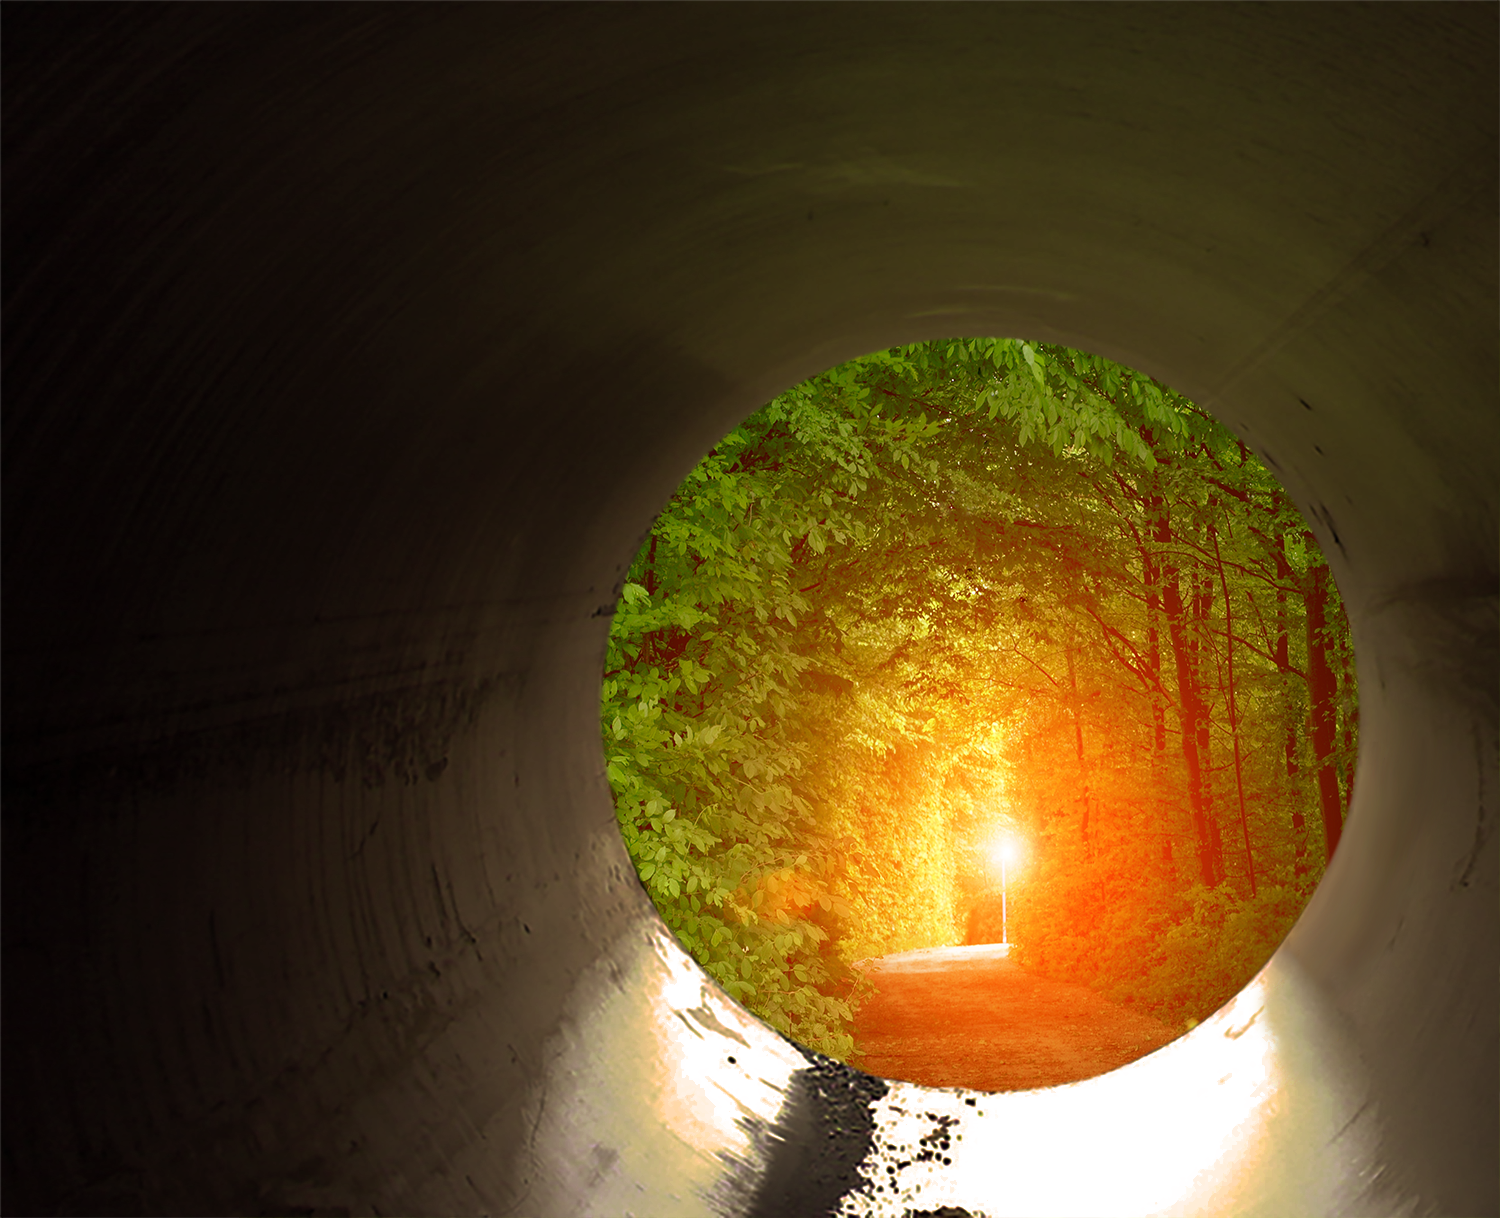 SUNSHINE: The Light at the End of the Tunnel